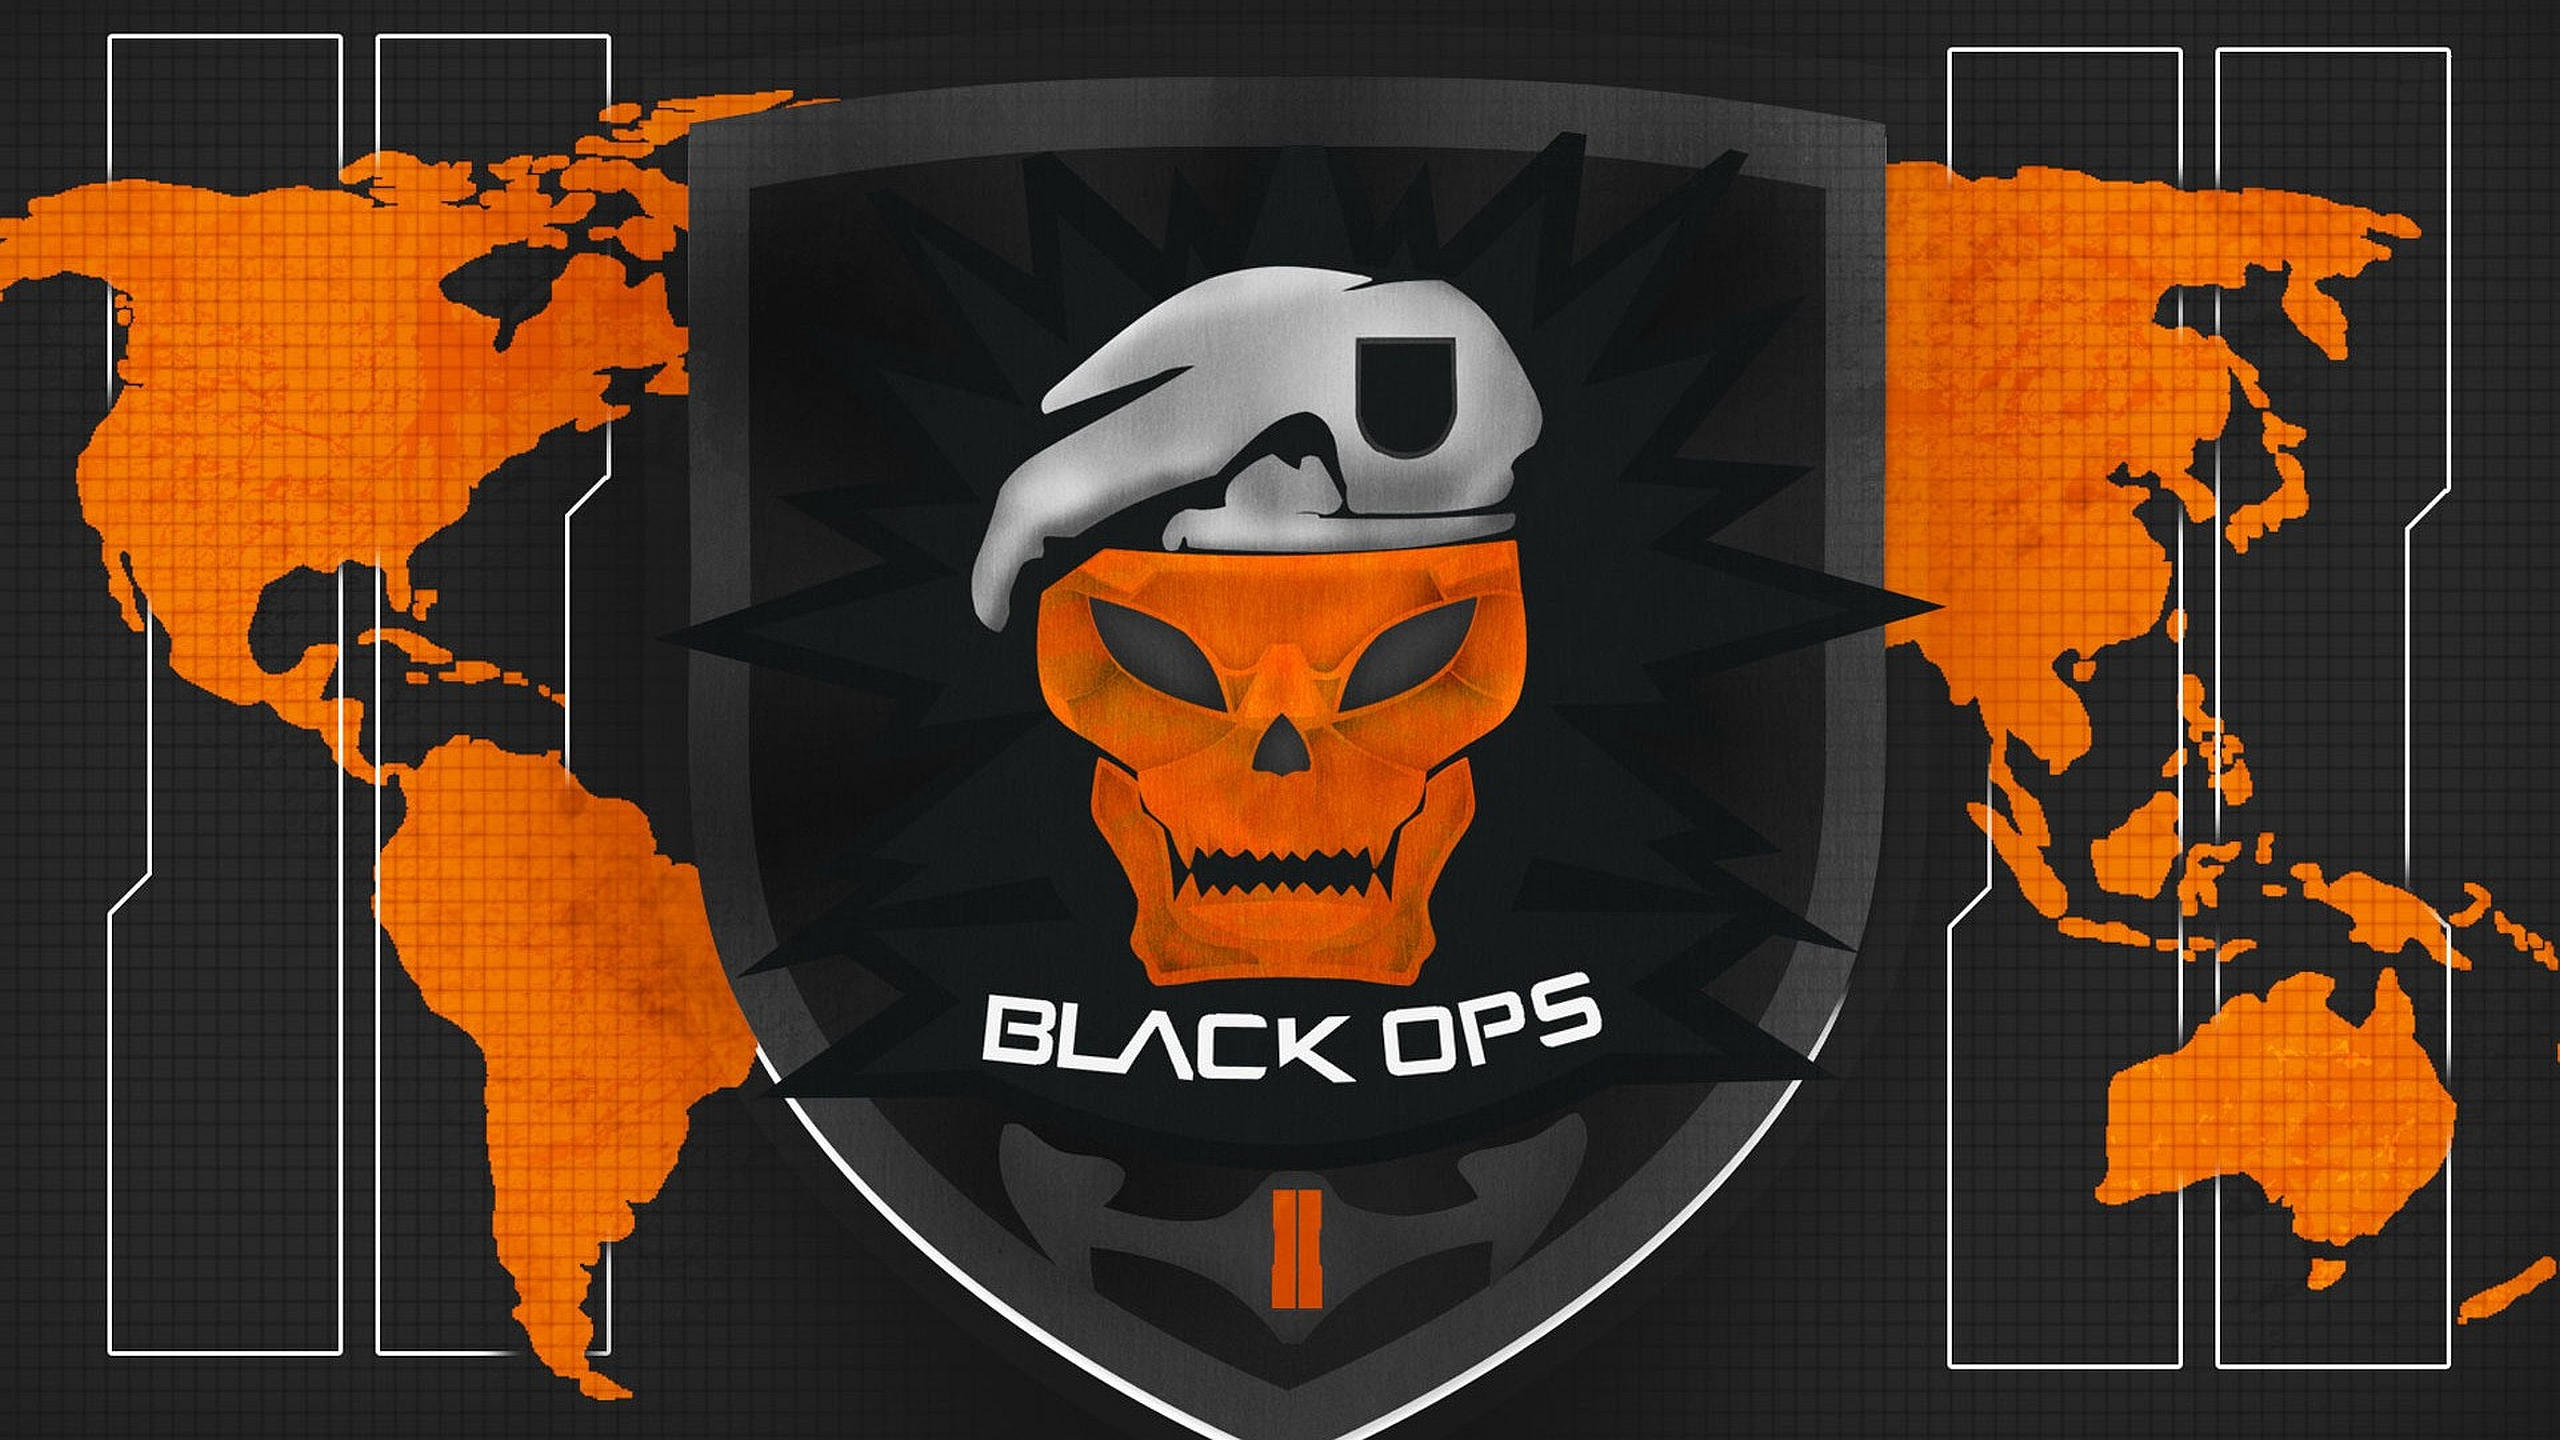 21 call of duty black ops hd wallpapers background - Black ops 4 logo wallpaper ...